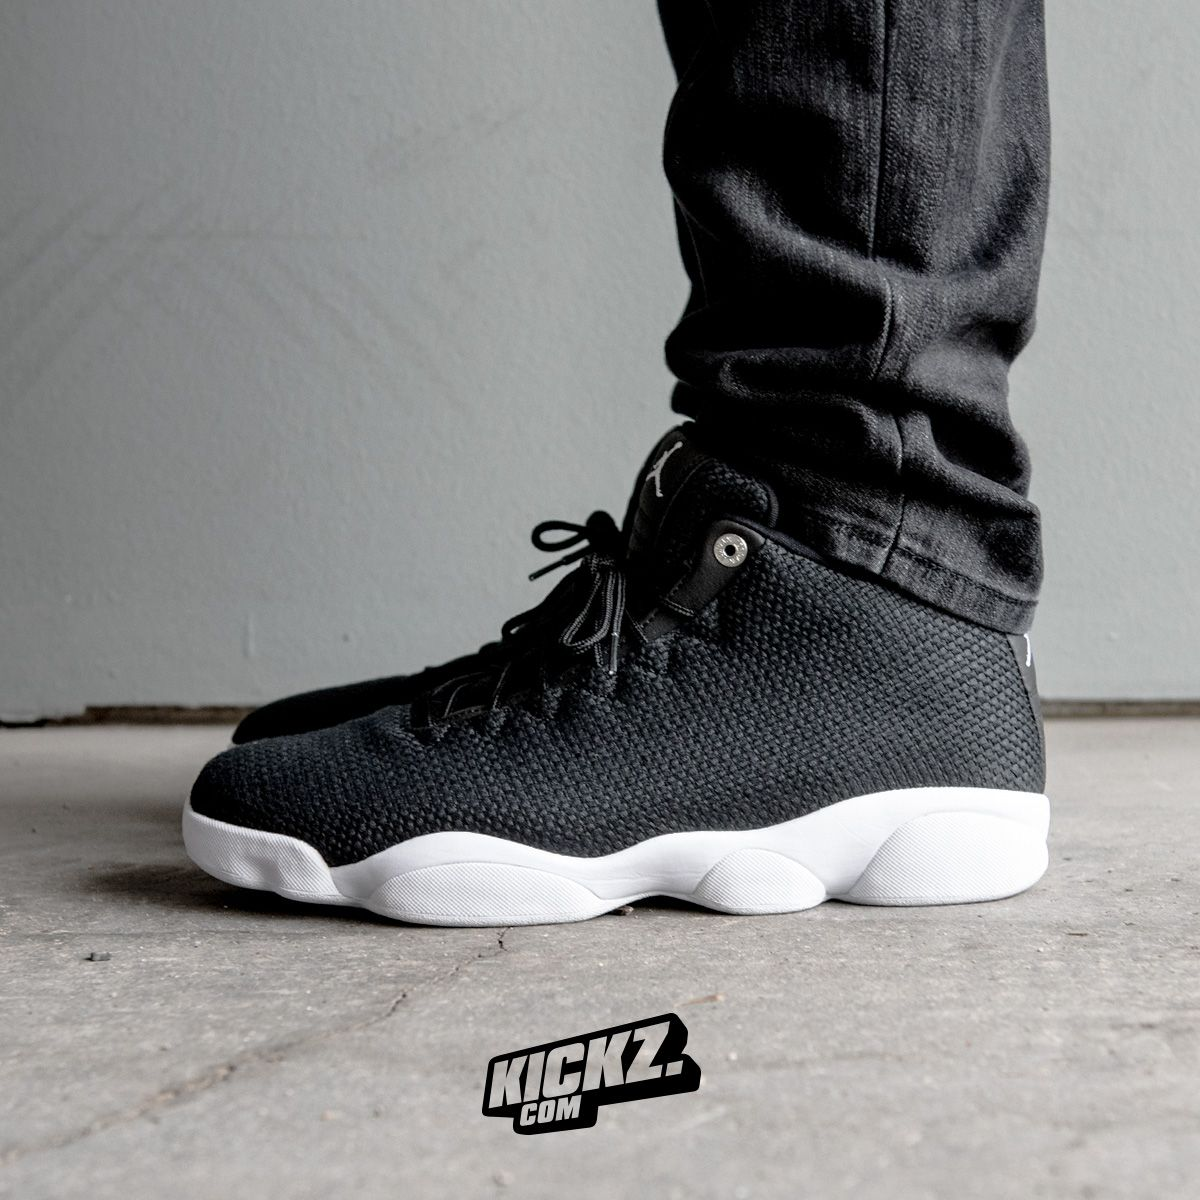 22c696d7822 A black woven upper and an all white Jordan XIII sole make the new Jordan  Horizon Low so fresh and so clean.